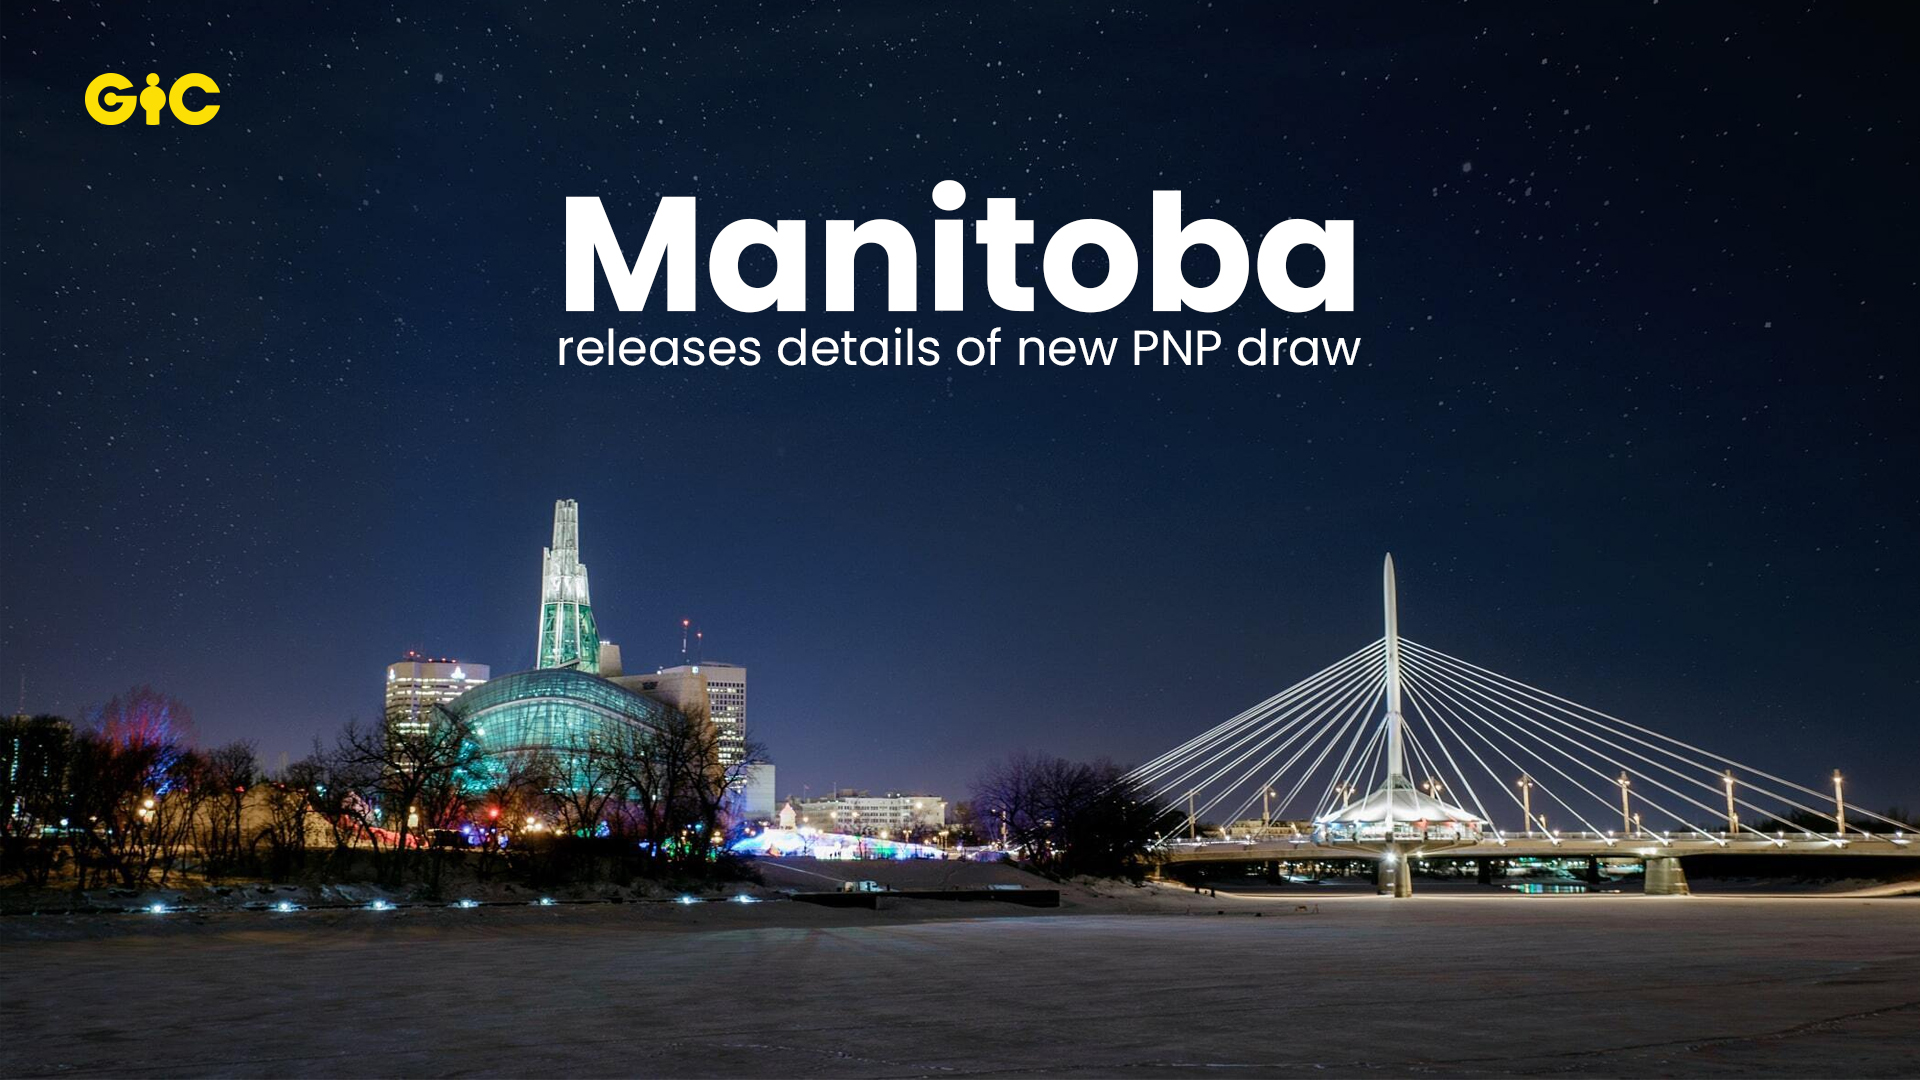 Manitoba releases details of new PNP draw